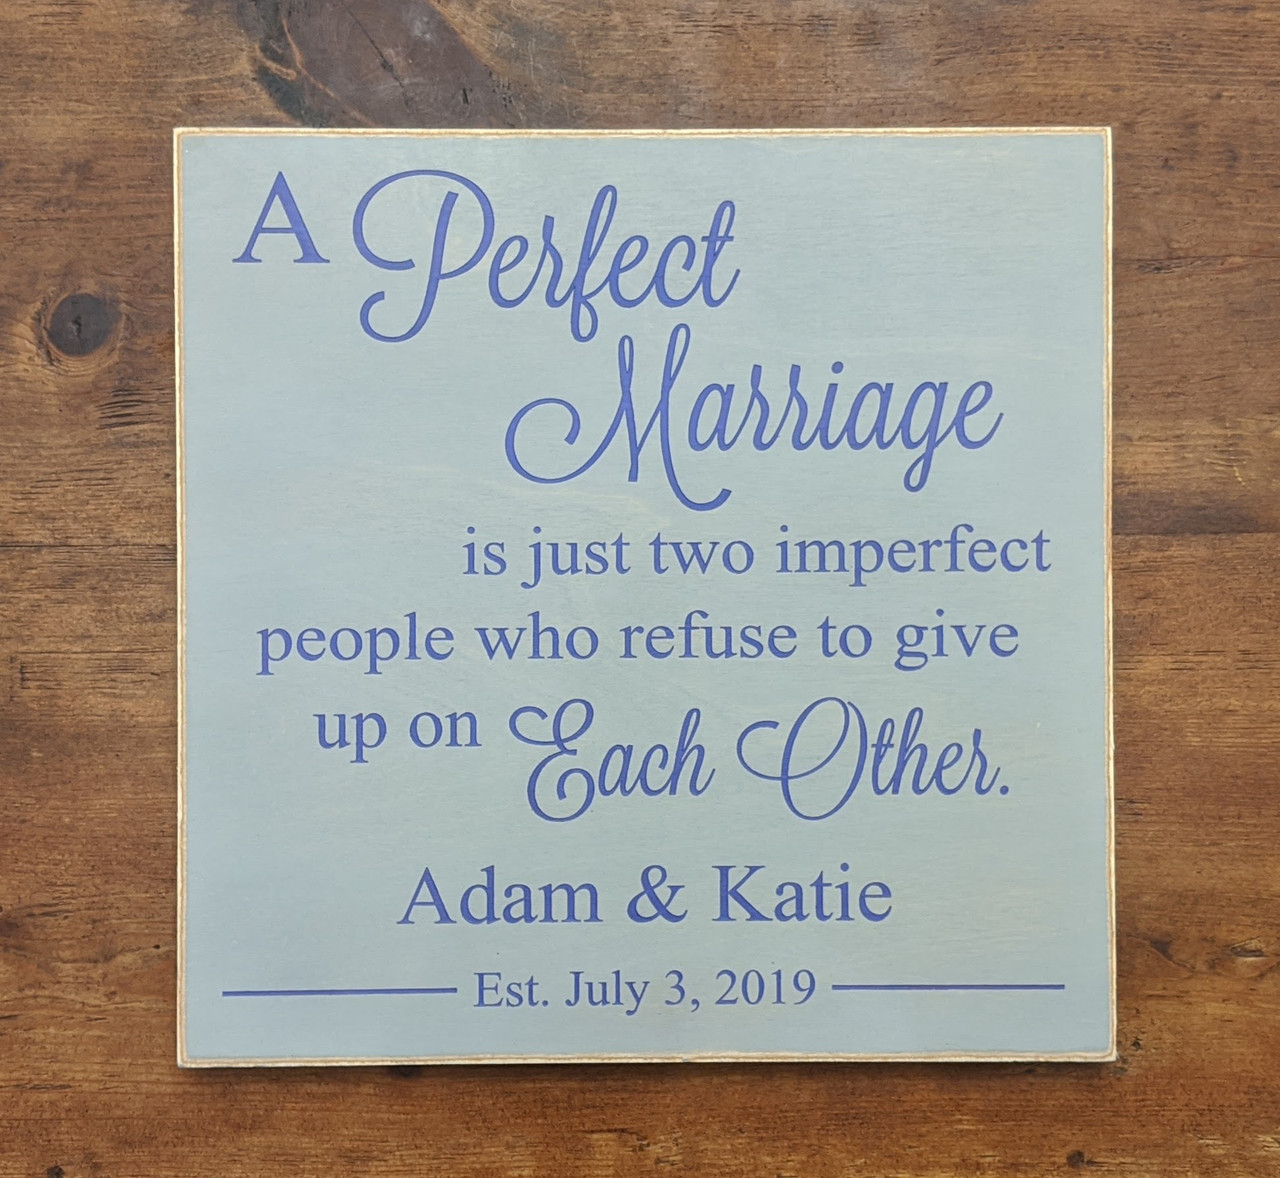 Personalized Anniversary Couple Sign - A Perfect Marriage is just two imperfect people who refuse to give up on each other